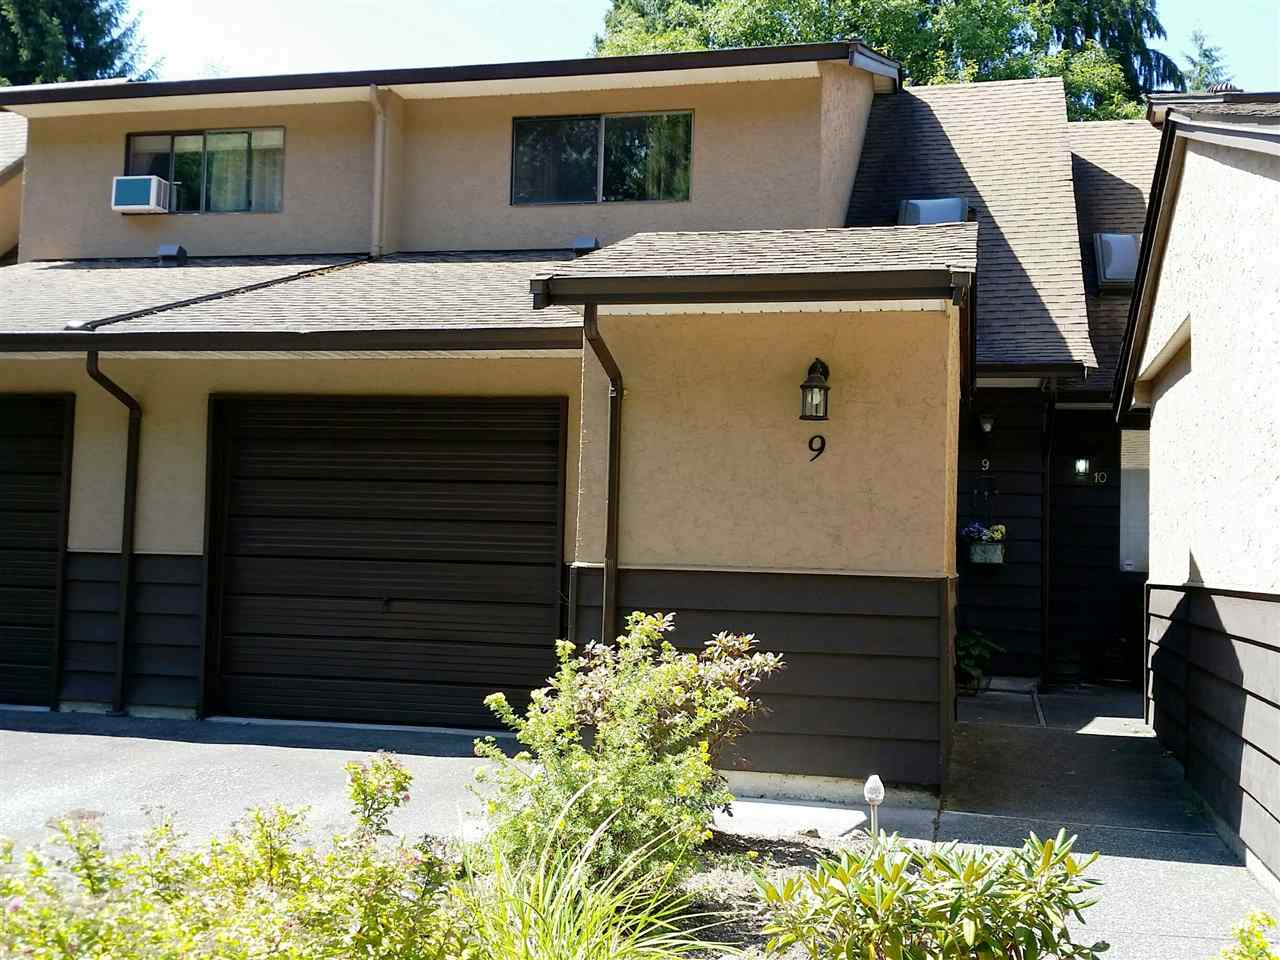 "Main Photo: 9 12227 SKILLEN Street in Maple Ridge: Northwest Maple Ridge Townhouse for sale in ""MCKINNEY CREEK"" : MLS® # R2098334"